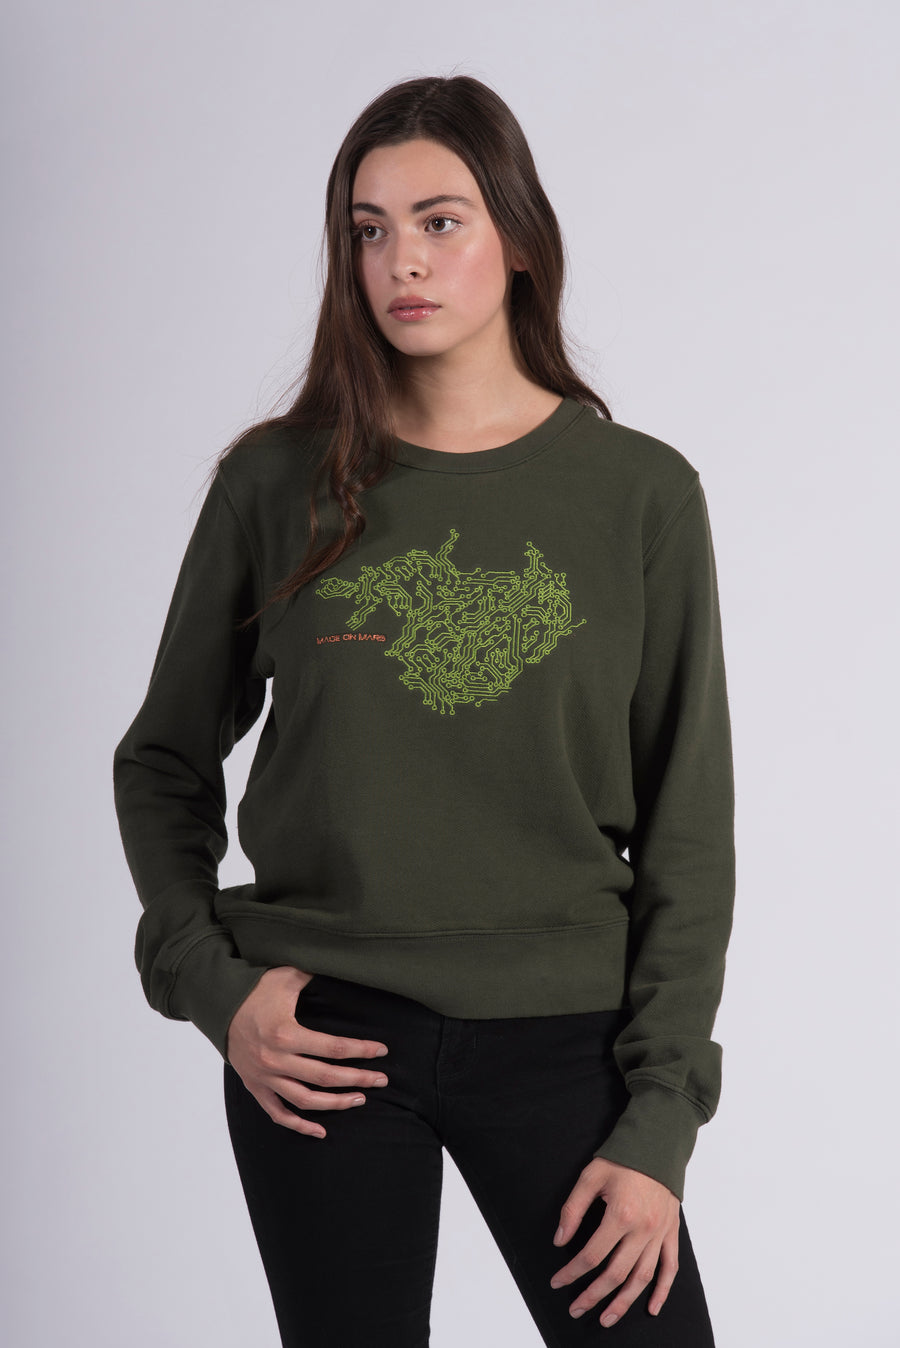 Circuit Board Embroidery Green Cotton Women's Sweatshirt Ethical